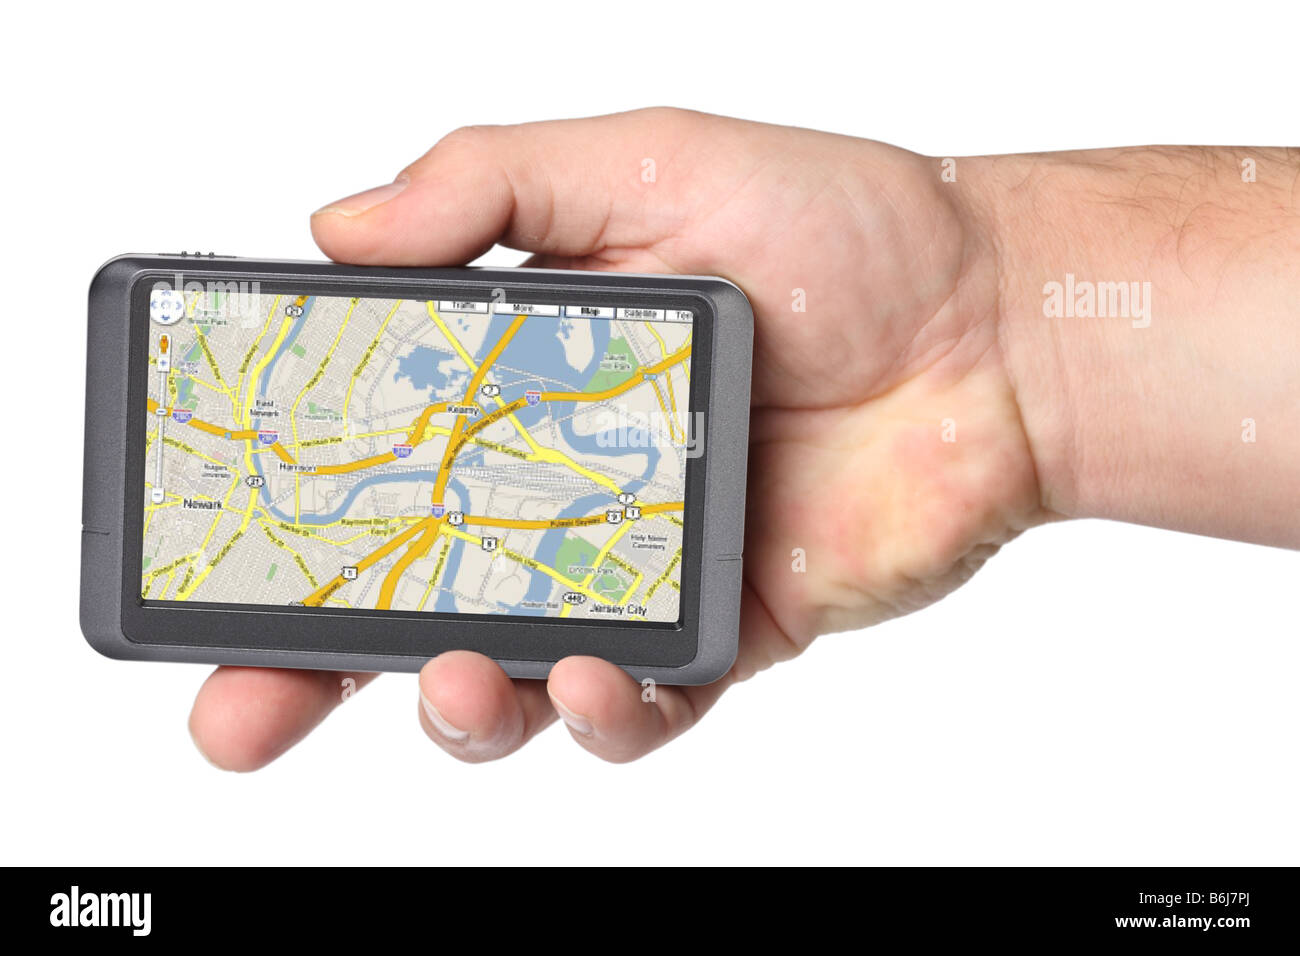 Portable GPS device in hand cutout on white background Stock Photo